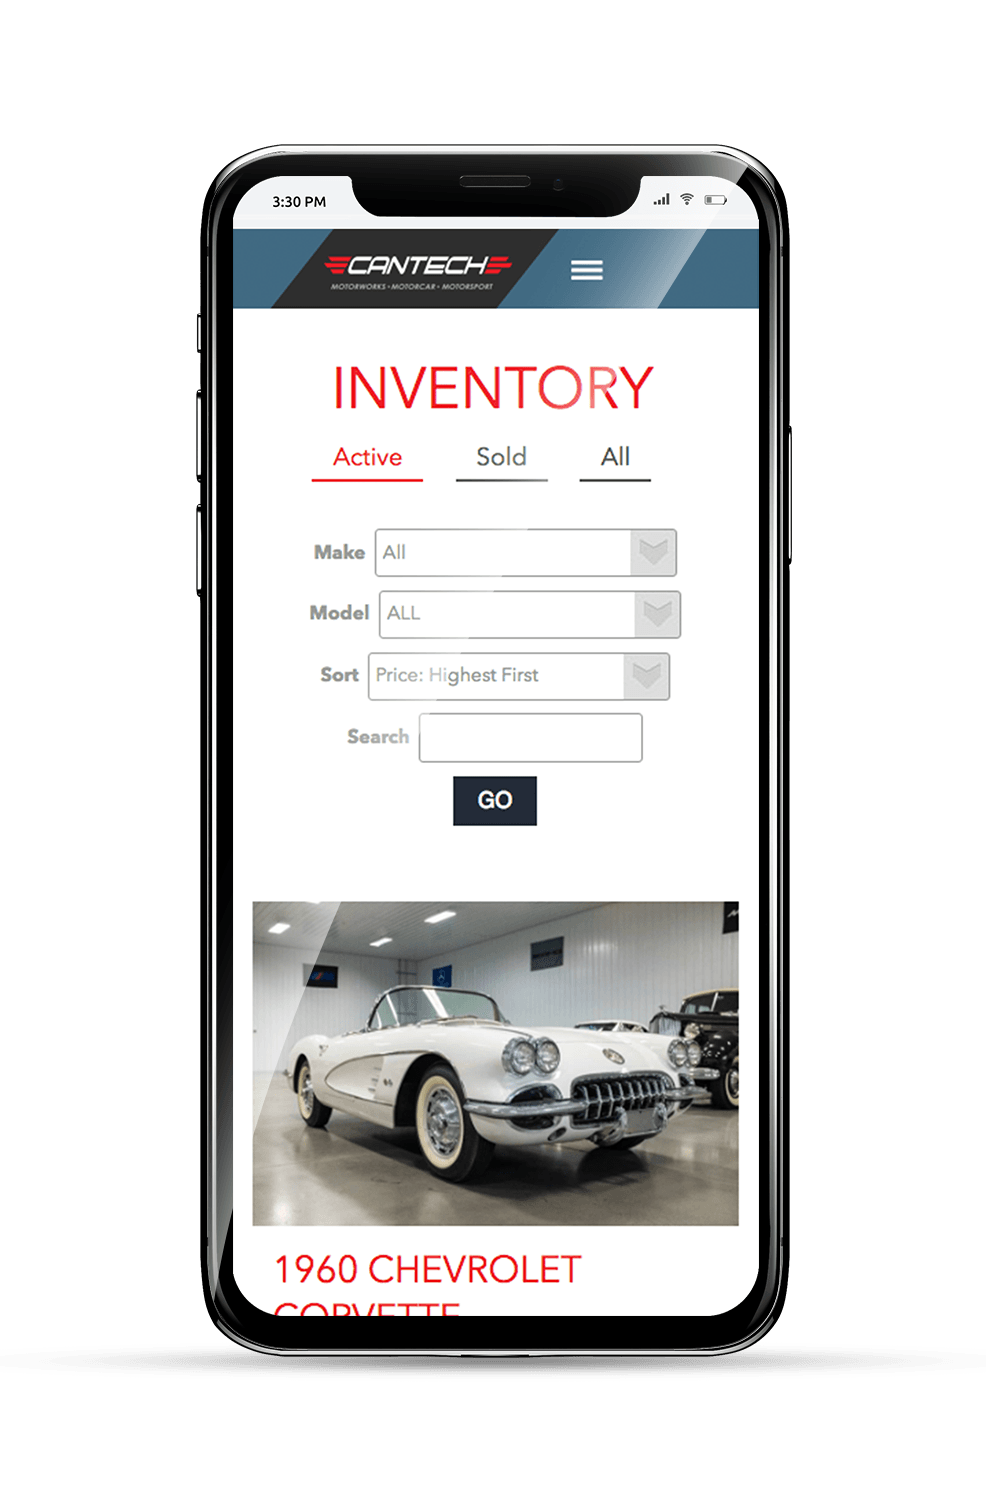 Cantech Mobile Inventory